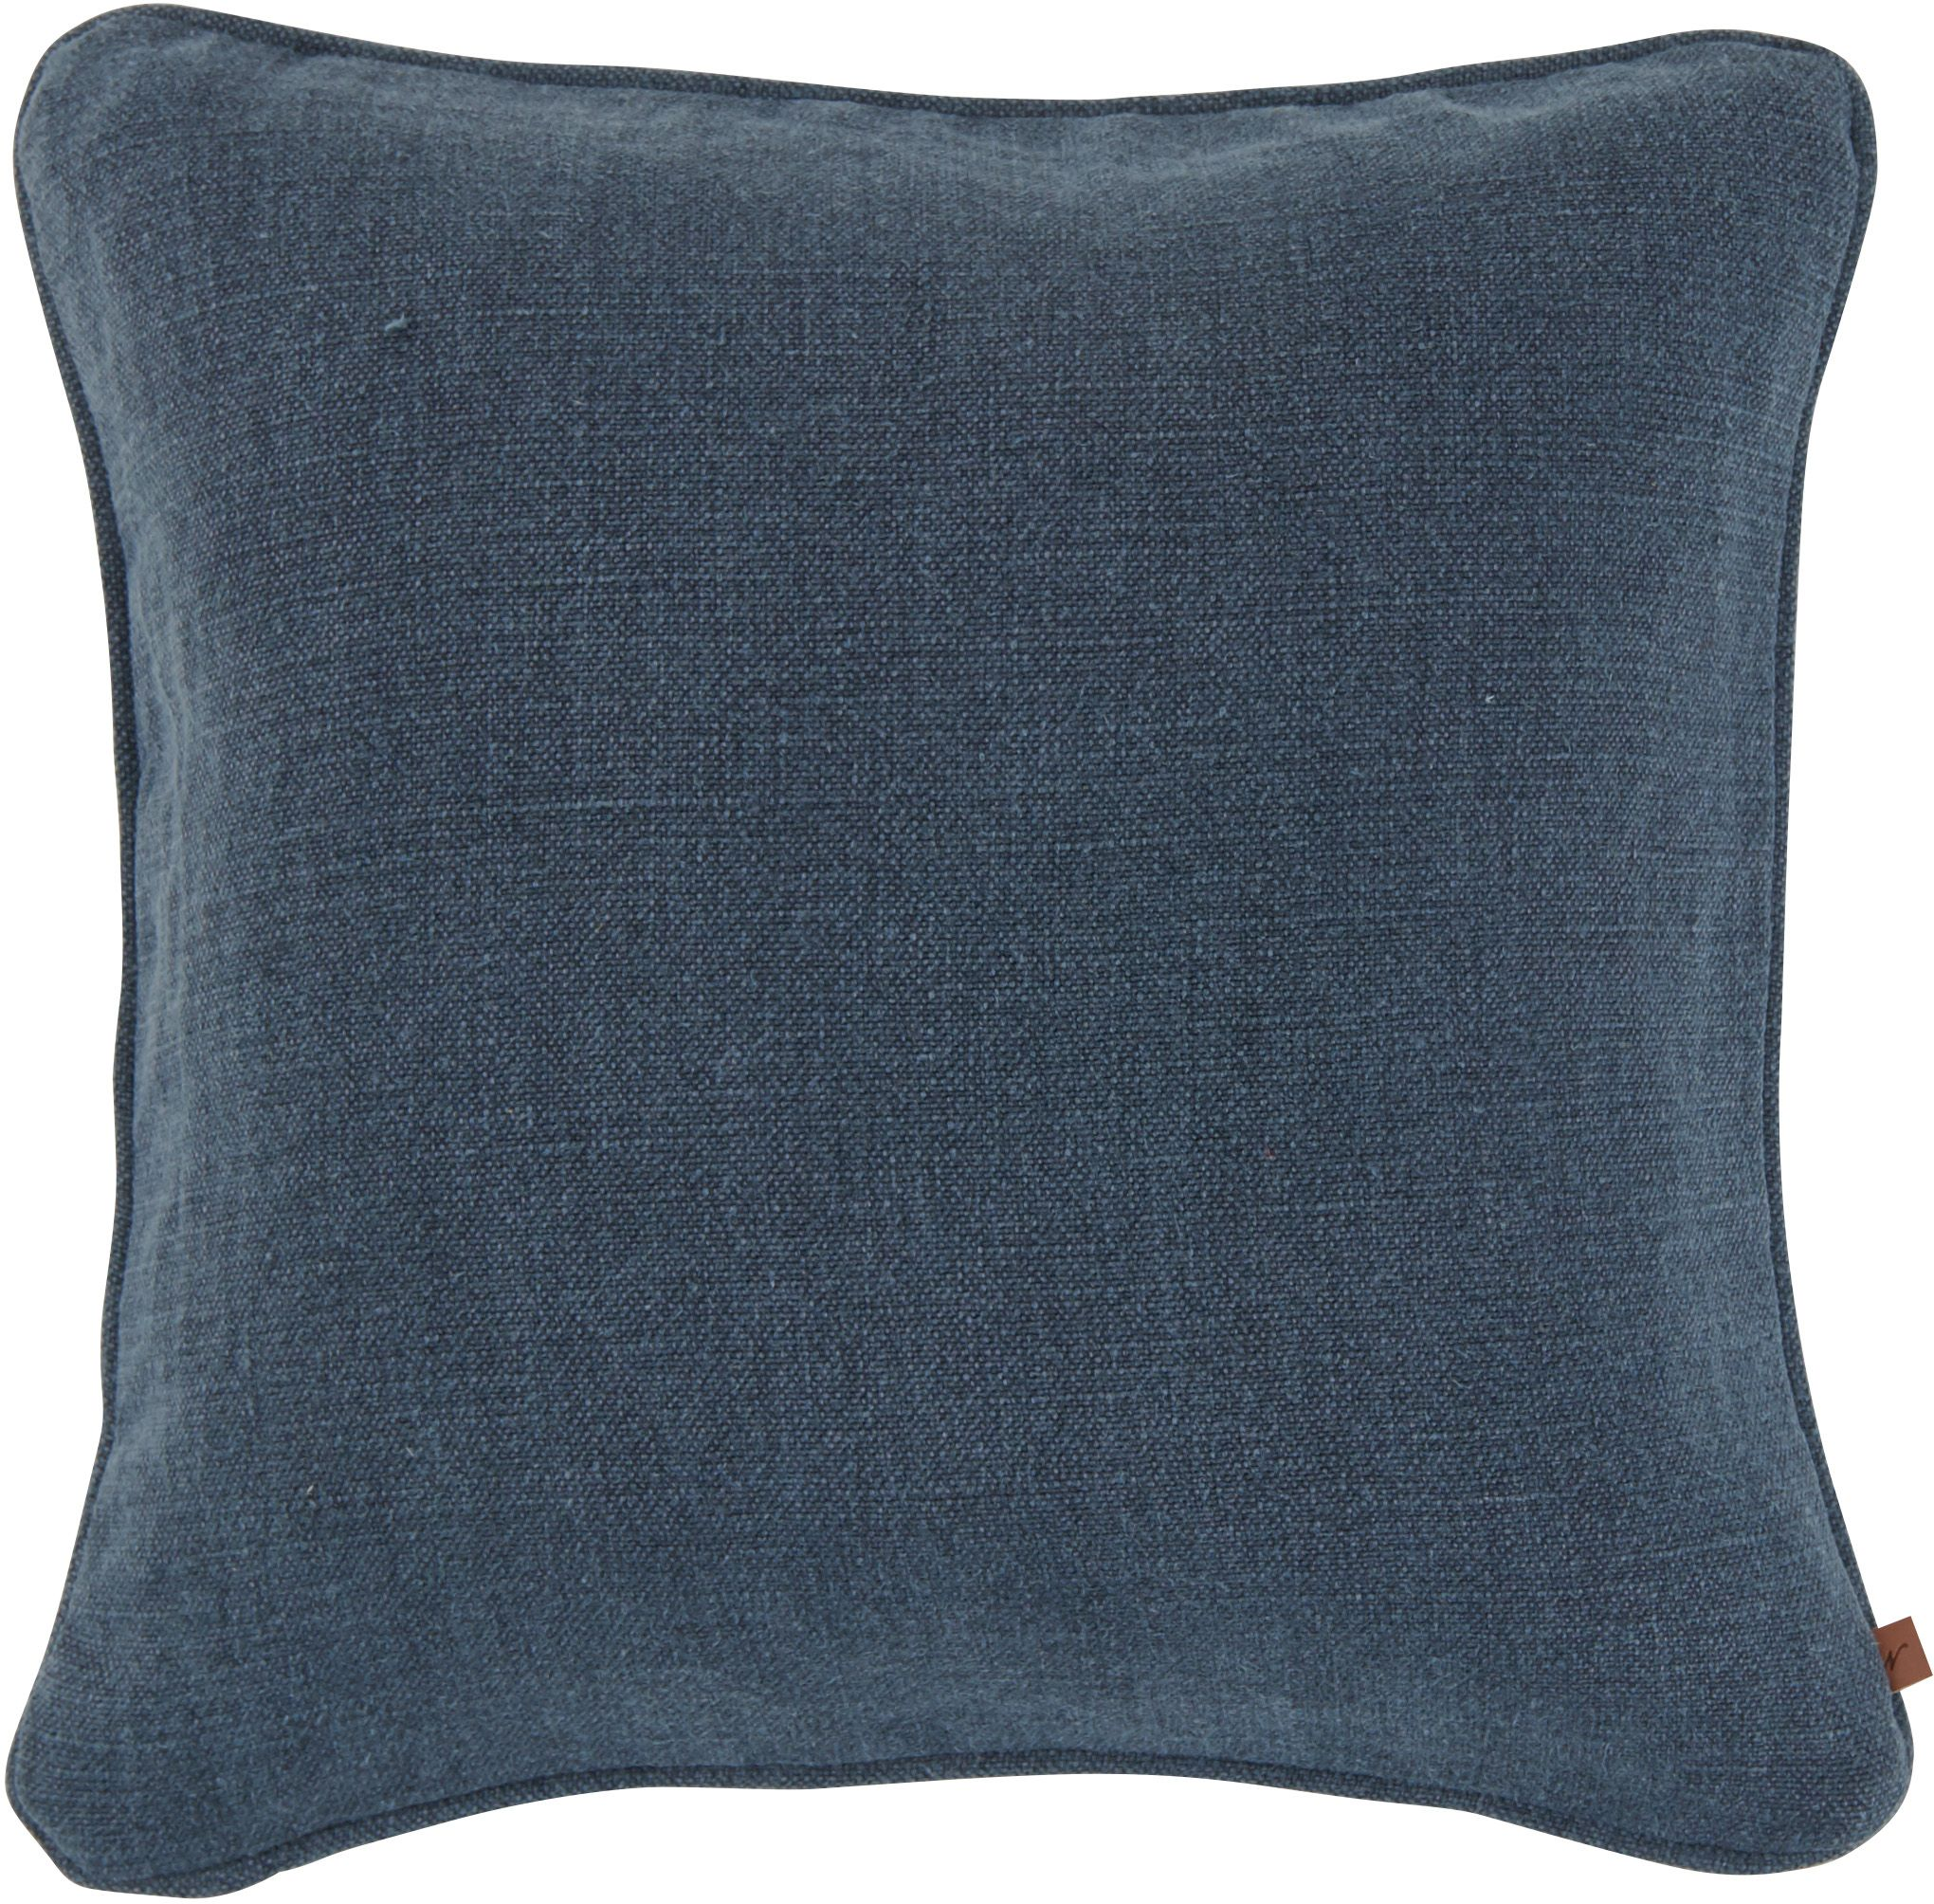 Florence Cushion 45x45cm, Chloe Denim